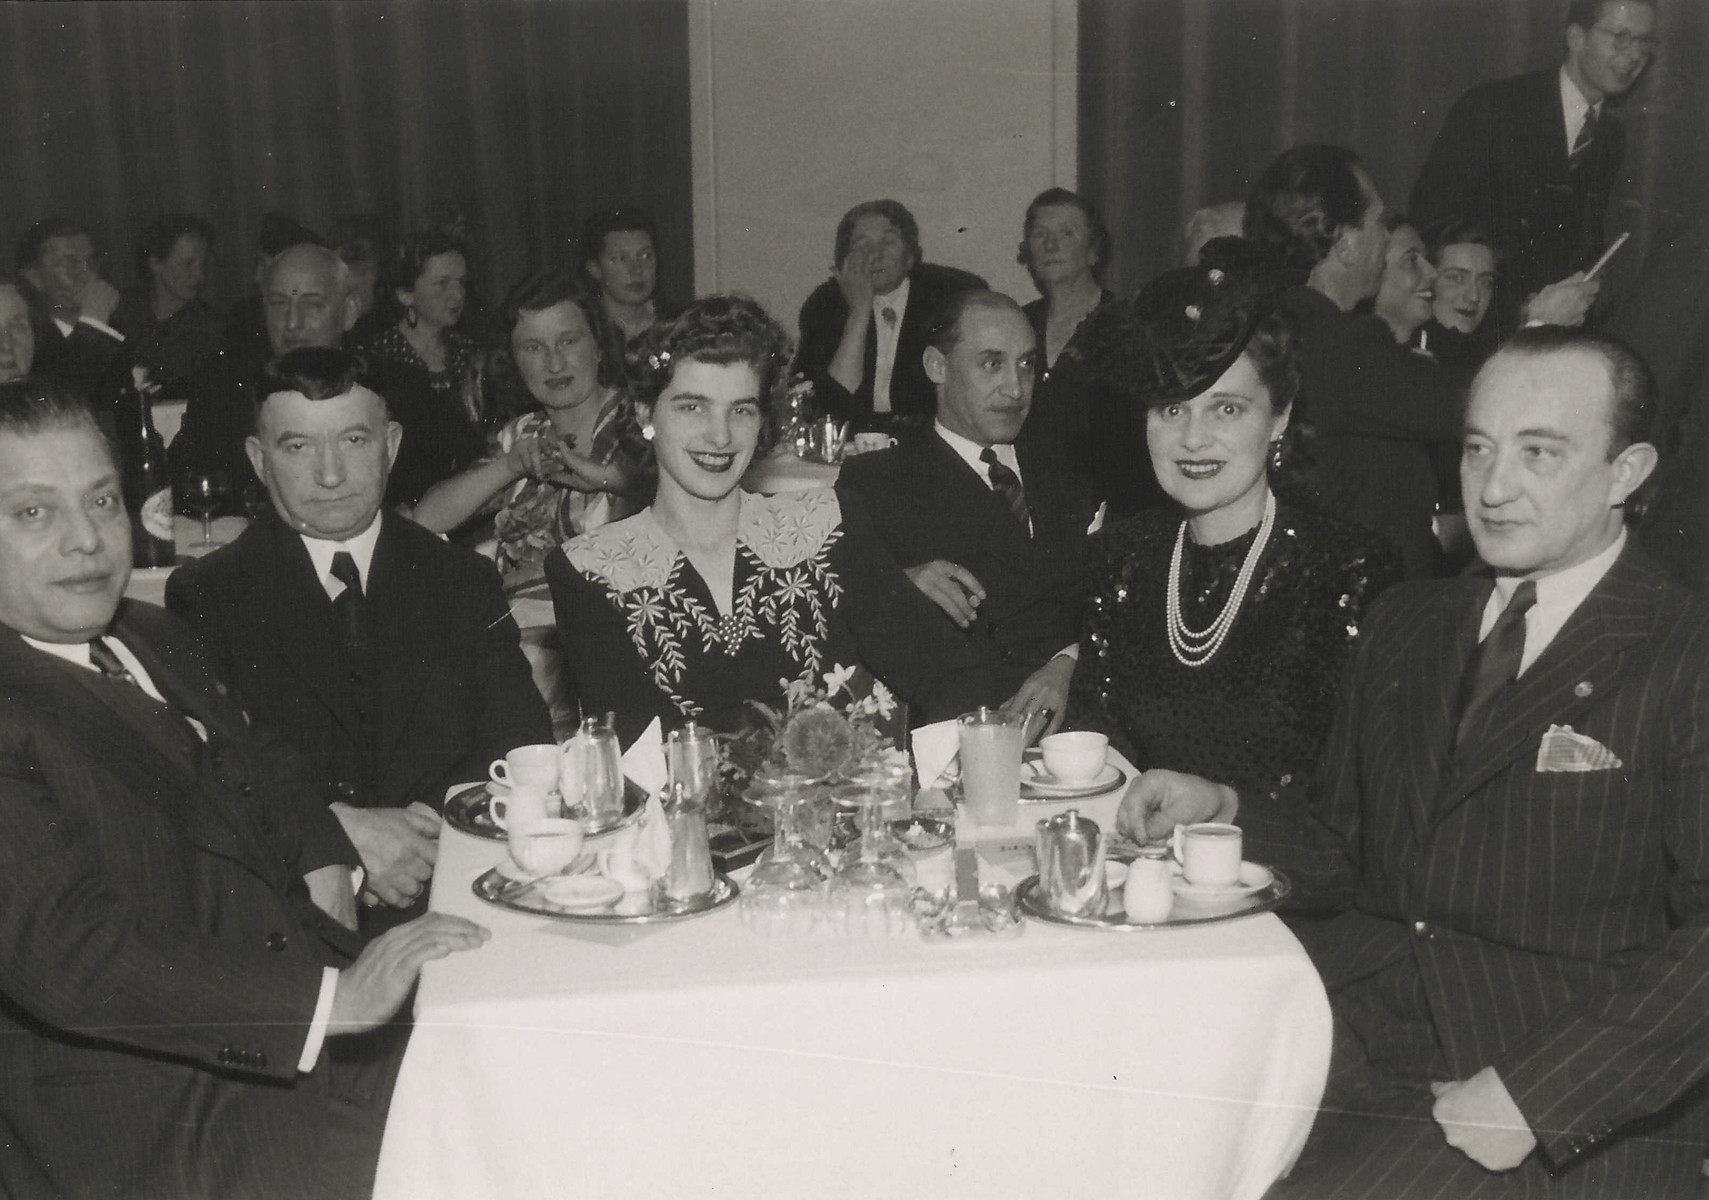 Col. Arturo Castellanos has dinner with George Mandel-Mantello and other friends.  From left to right are Col. Jose Arturo Castellanos, Mr. Erteschik, Maria Schurmann Castellanos, Mrs. Magda Denso (Deutsch) who came to Switzerland on Salvadoran papers and George Mandel-Mantello.